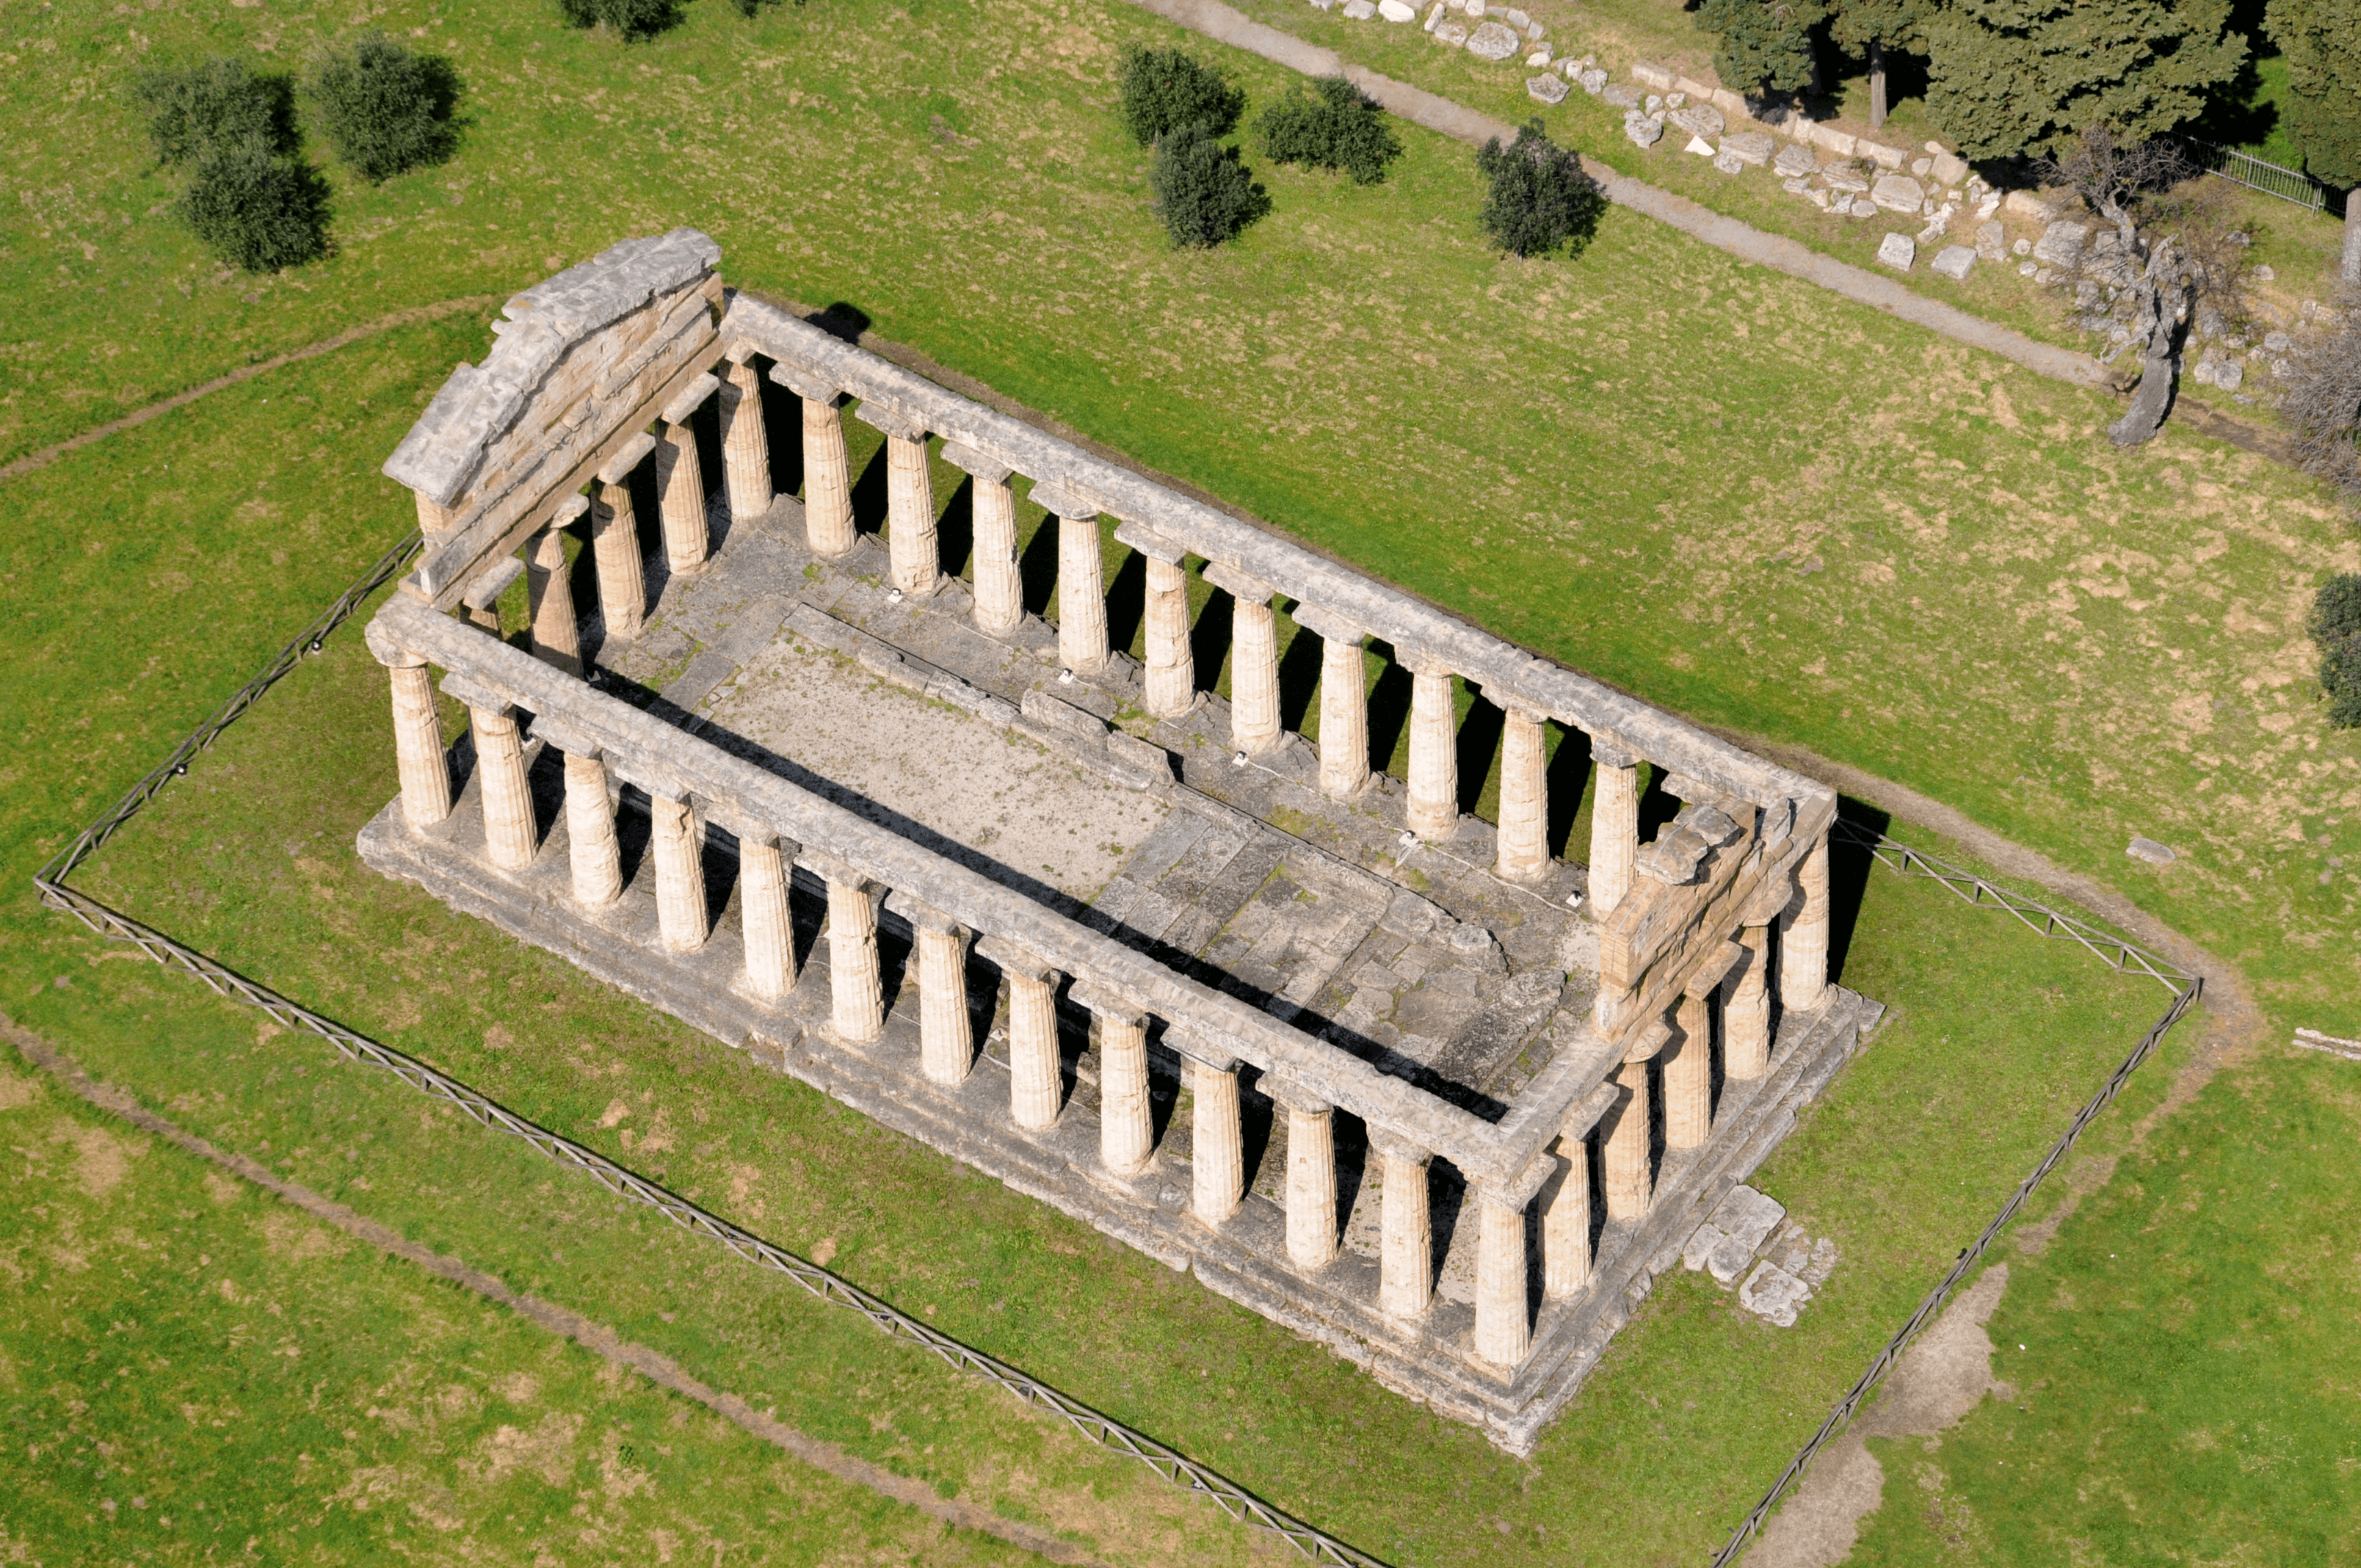 An aerial view of the Tempoli di Hera